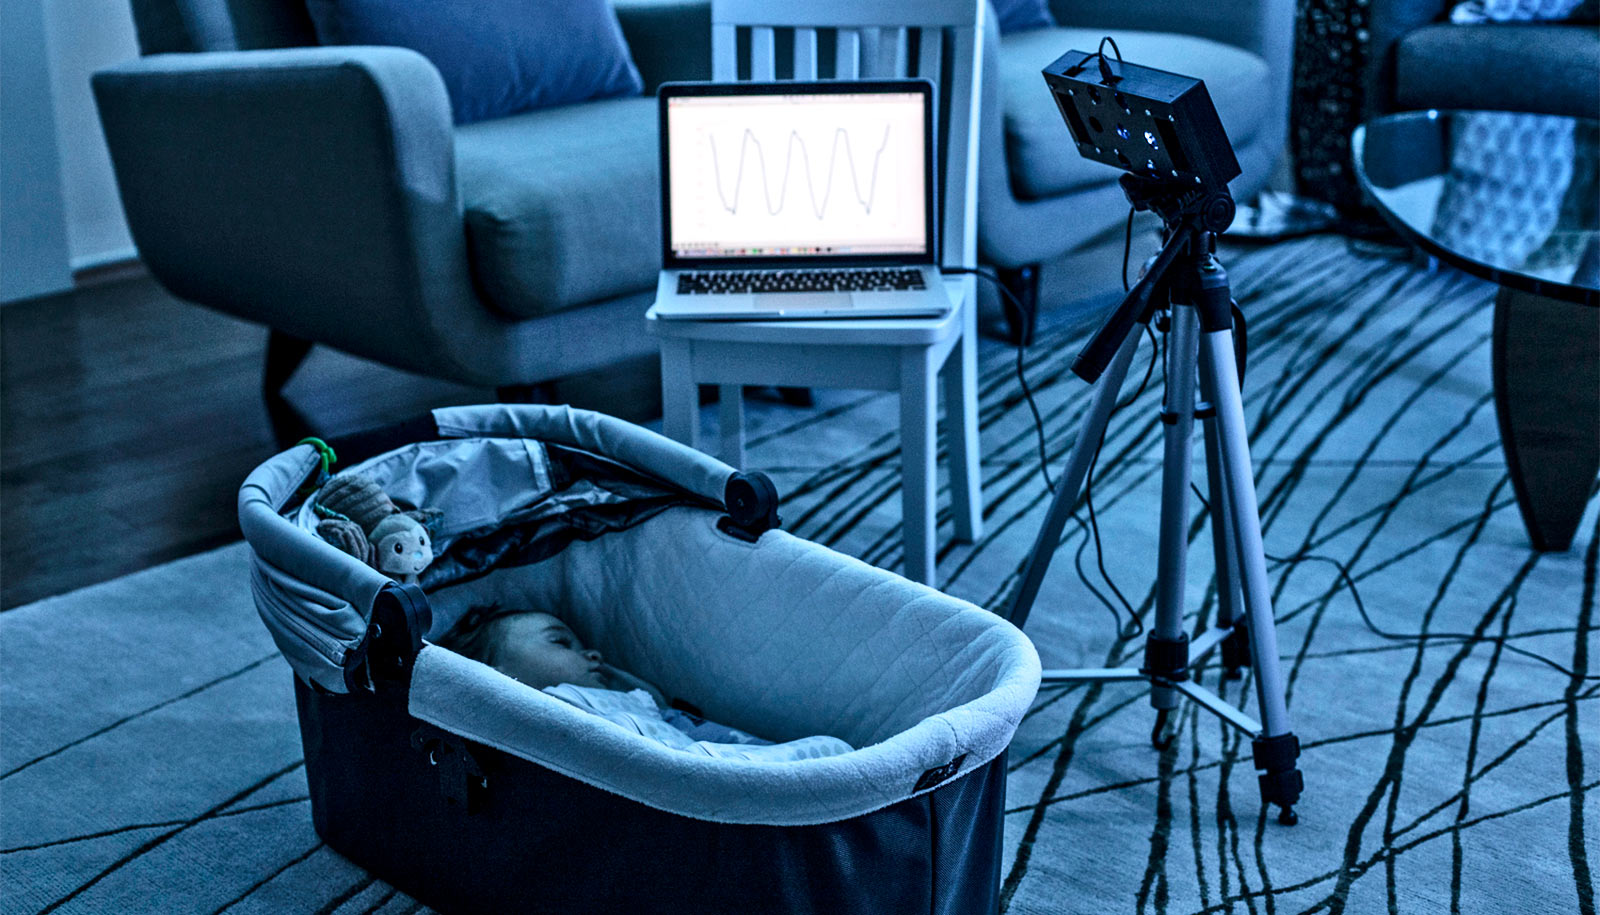 BreathJunior monitors sleeping babies with white noise thumbnail